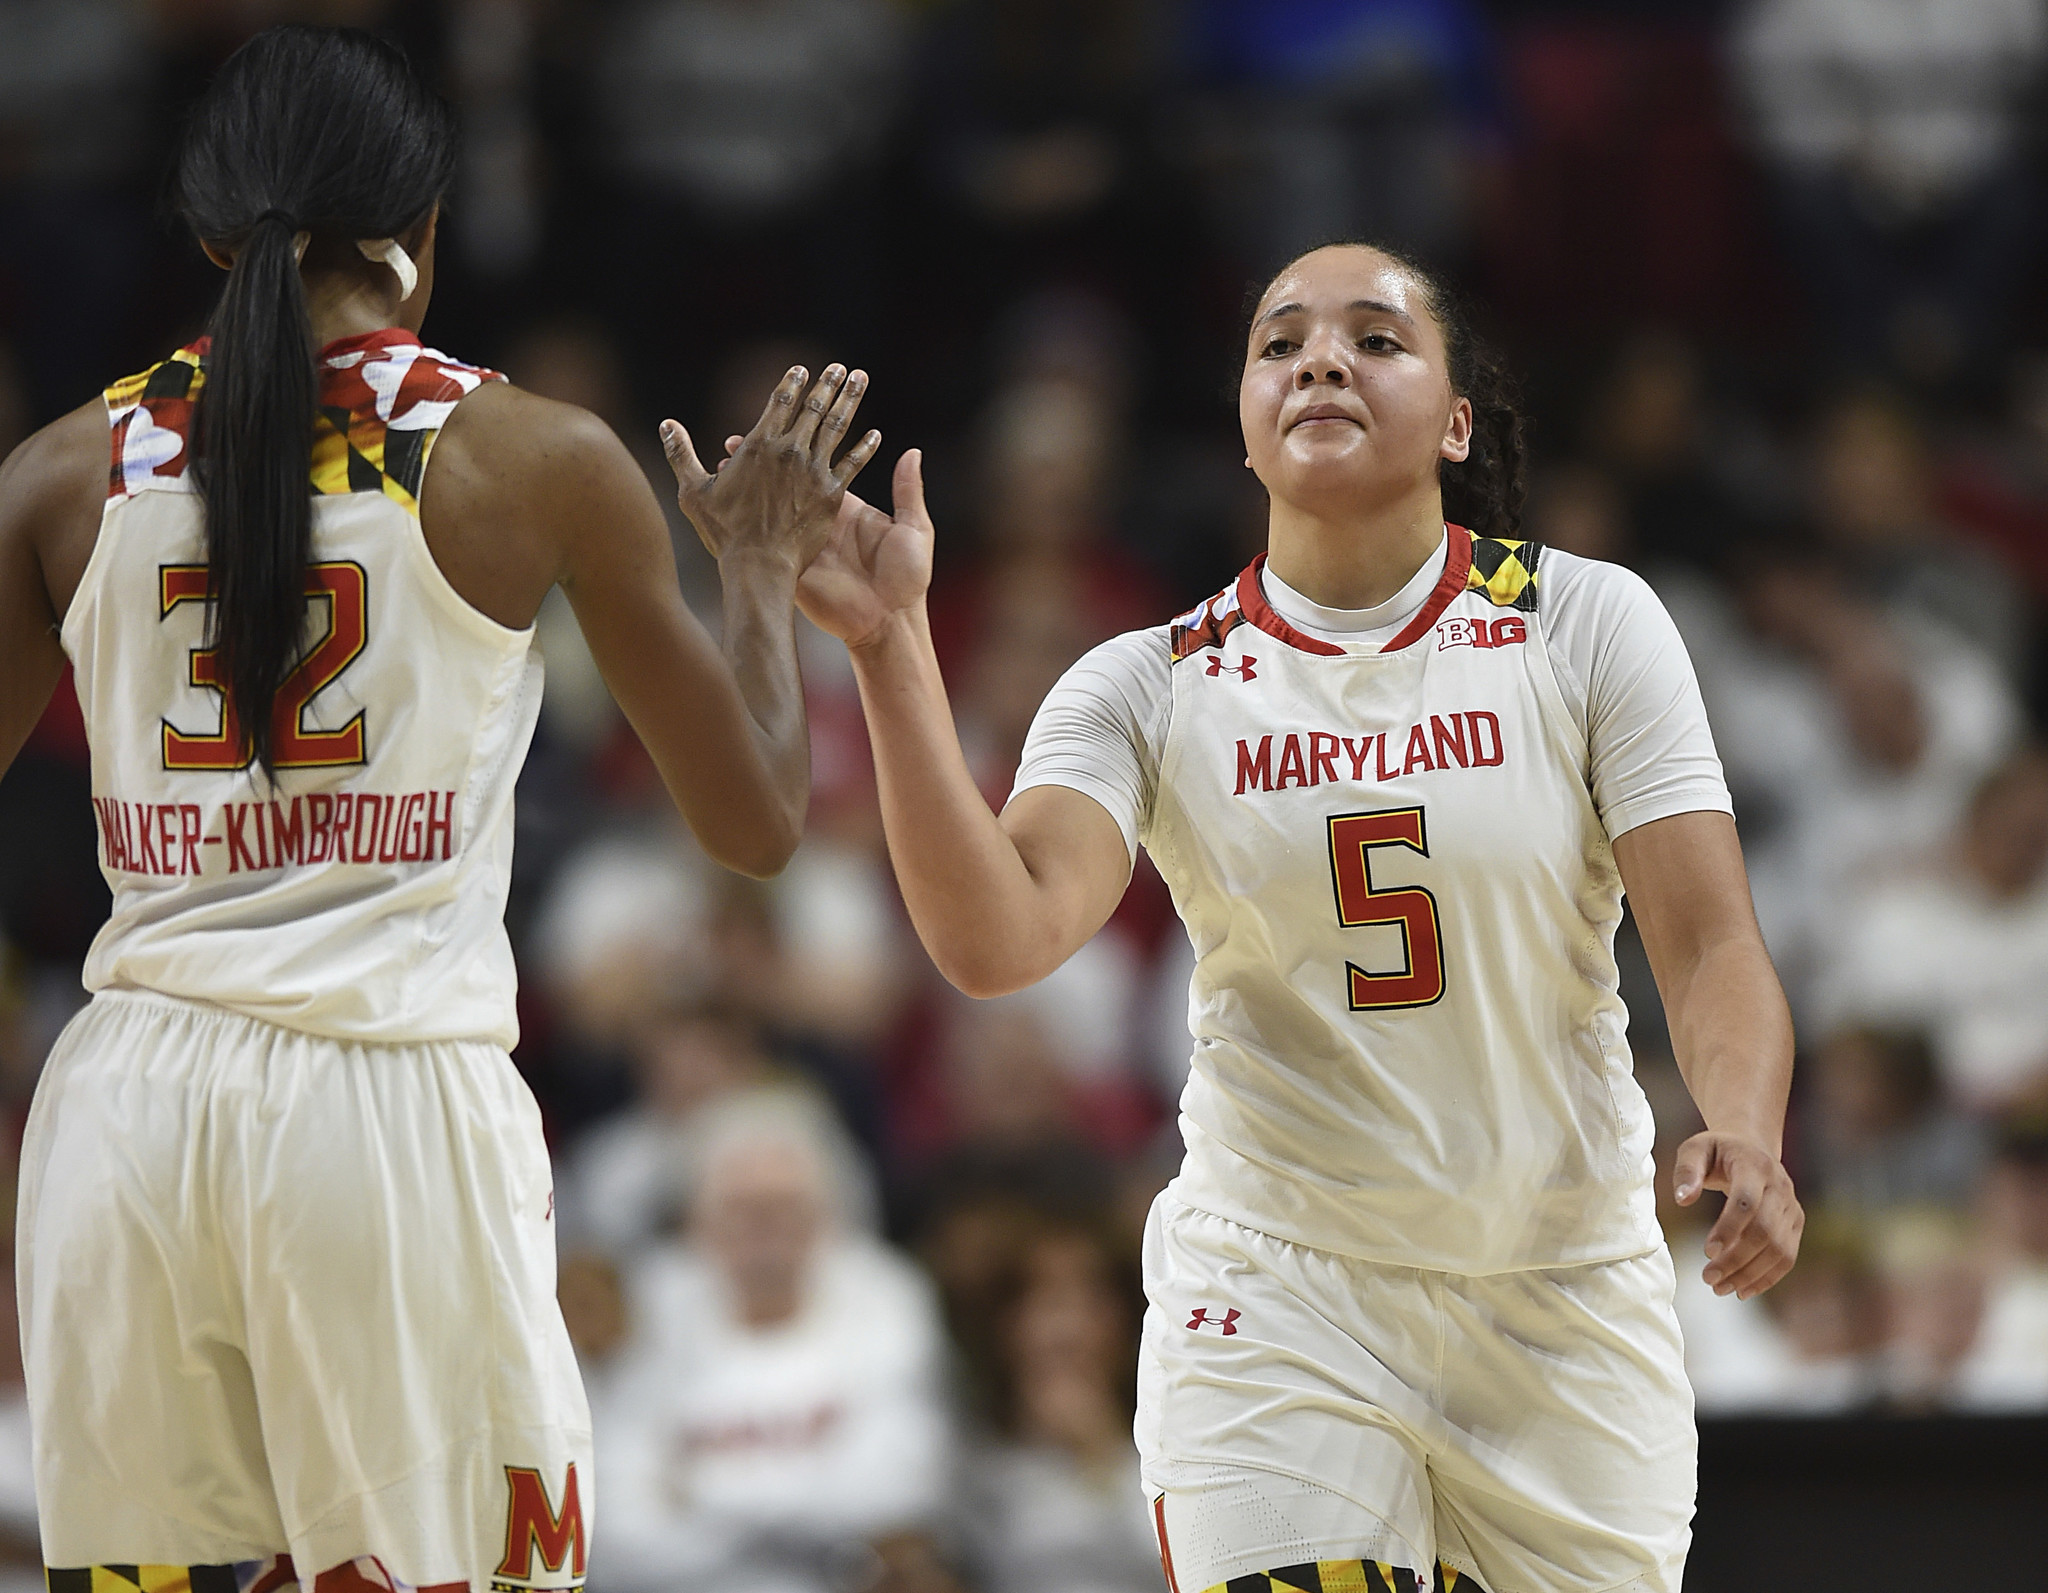 Bal-maryland-s-destiny-slocum-named-big-ten-freshman-of-the-year-three-other-terps-honored-20170227